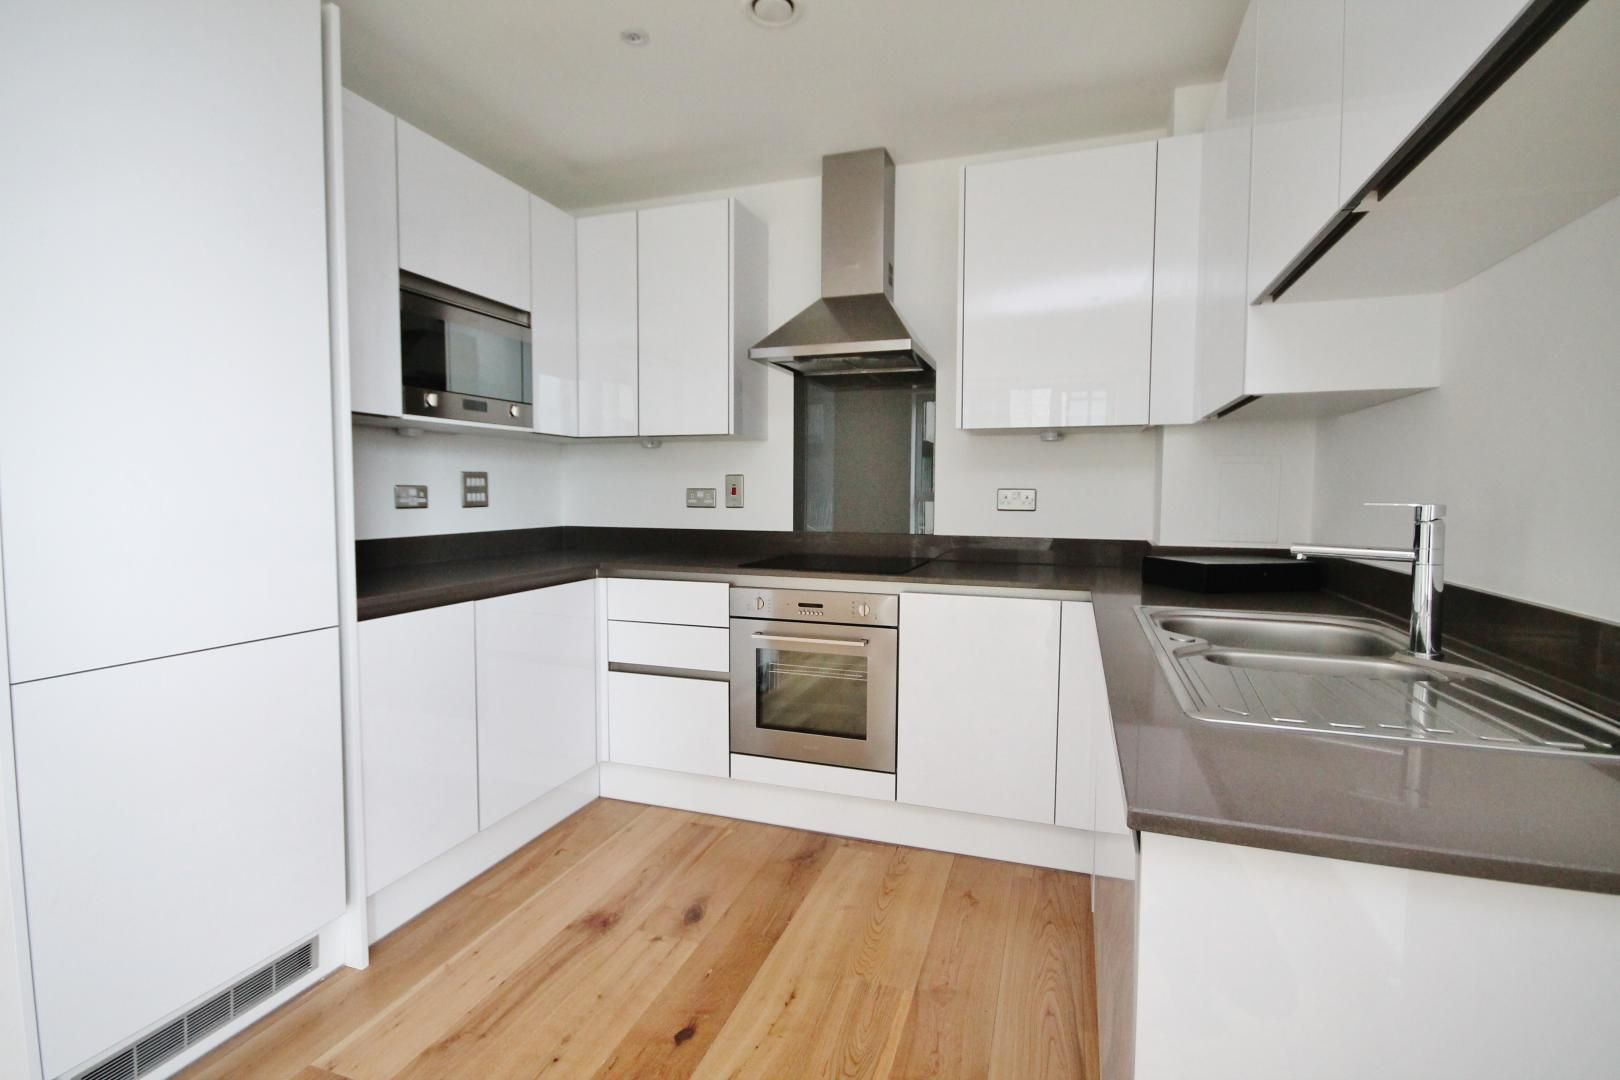 1 bed  for sale in Centurion Tower  - Property Image 2